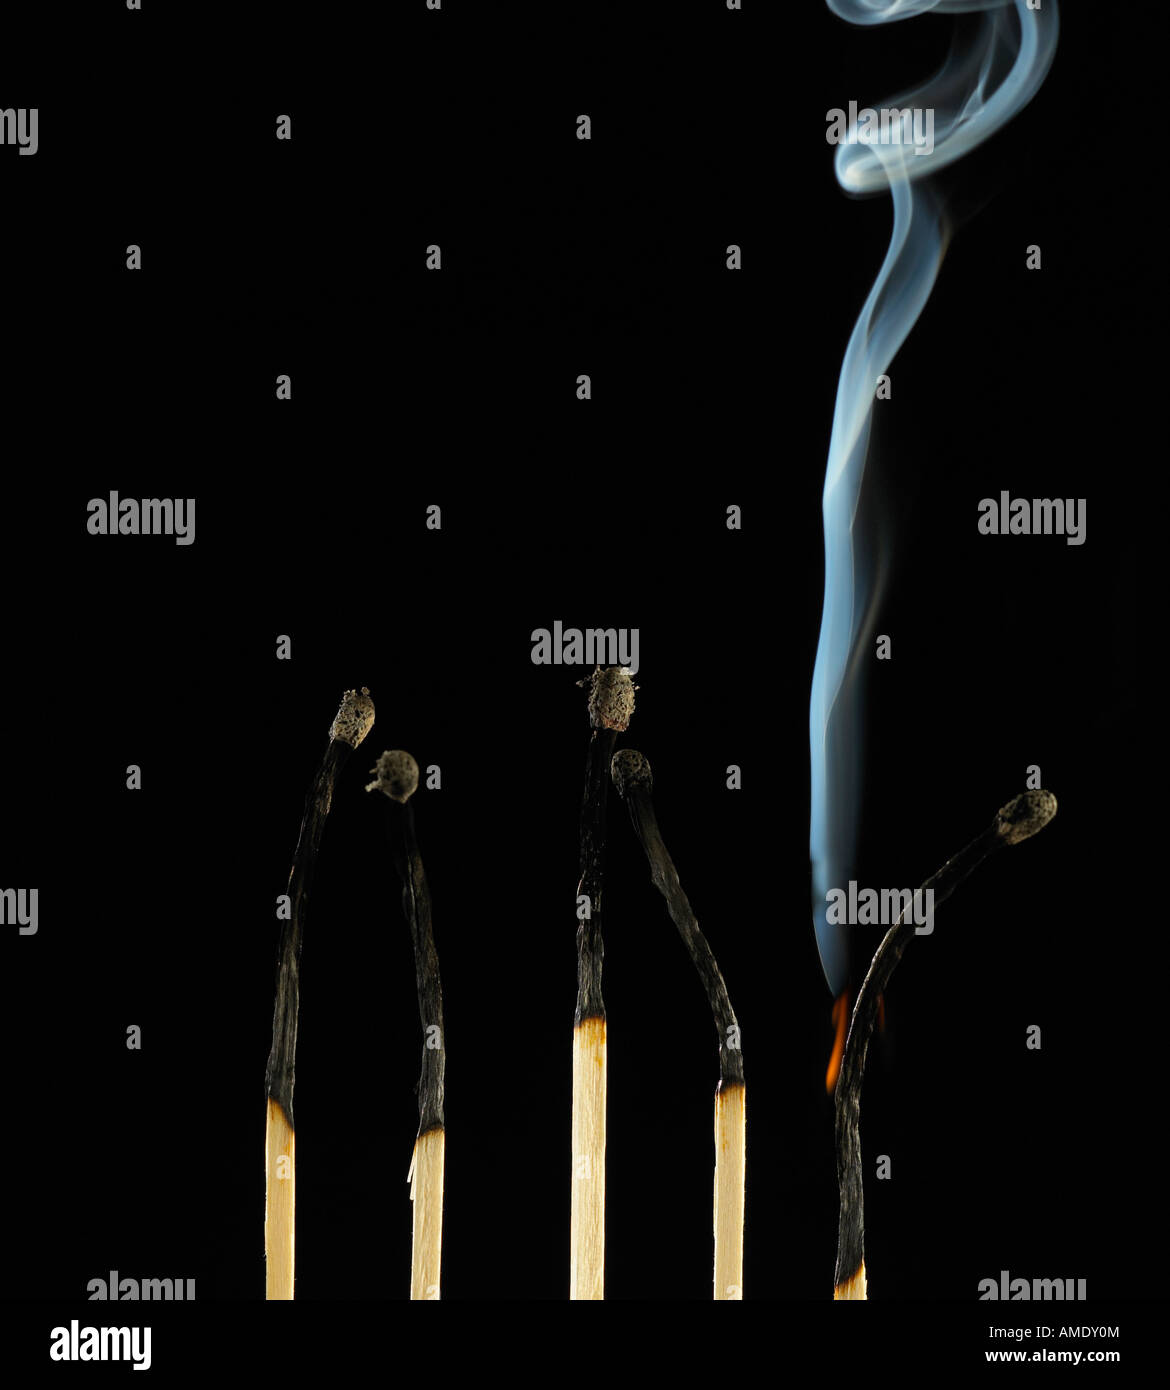 ROW OF FIVE BURNT MATCHES WITH SINGLE MATCH SMOULDERING - Stock Image